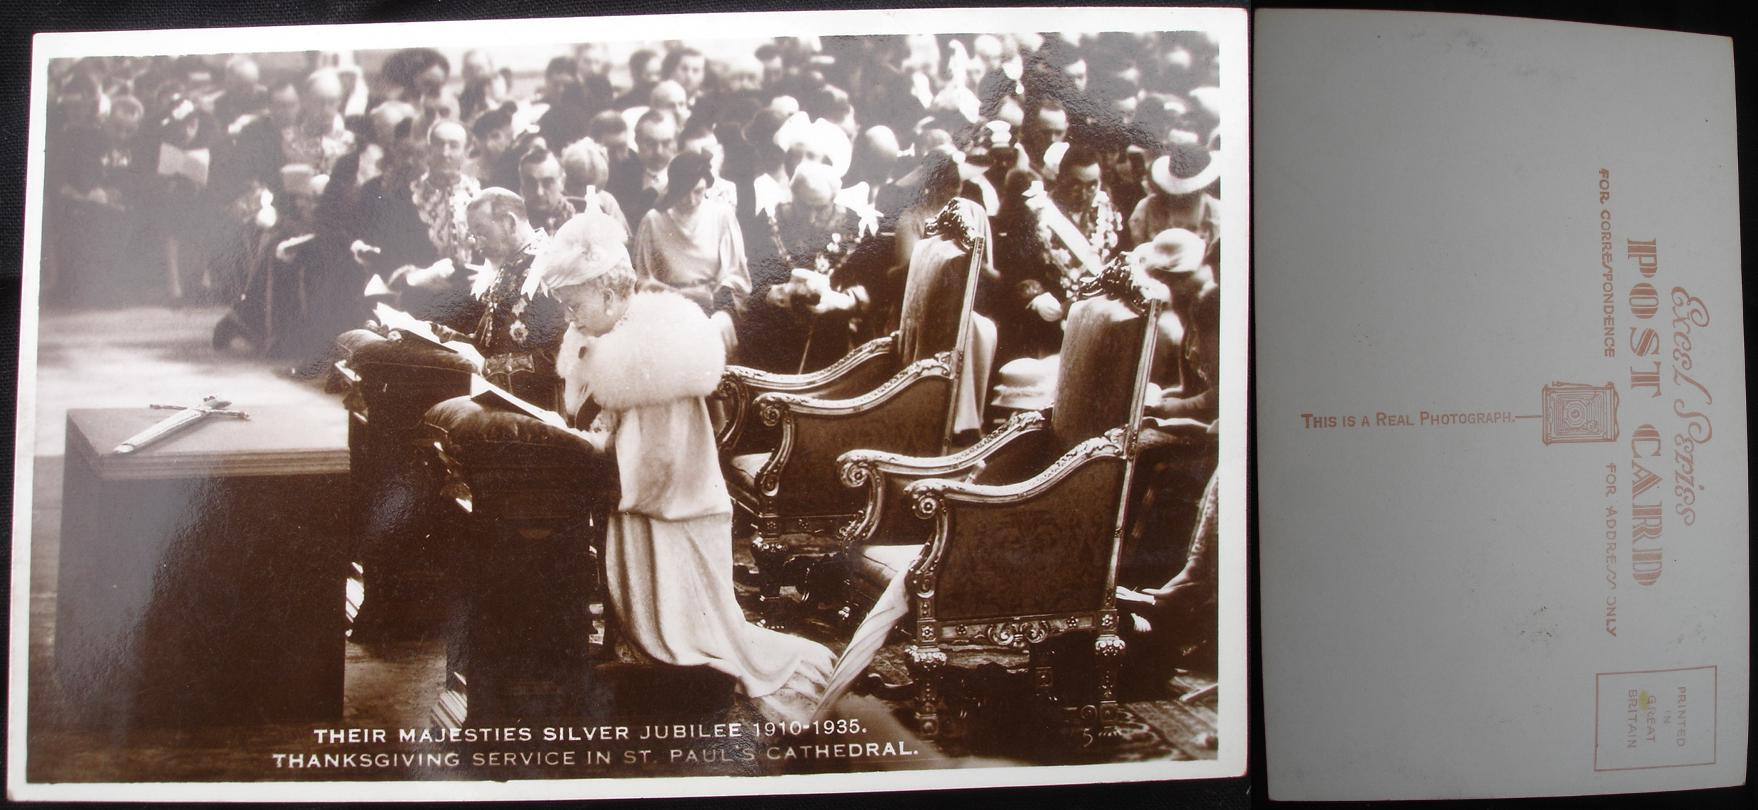 Real Photo Postcard - Royal Silver Jubilee Service 1935, St Pauls- click for larger image in new window